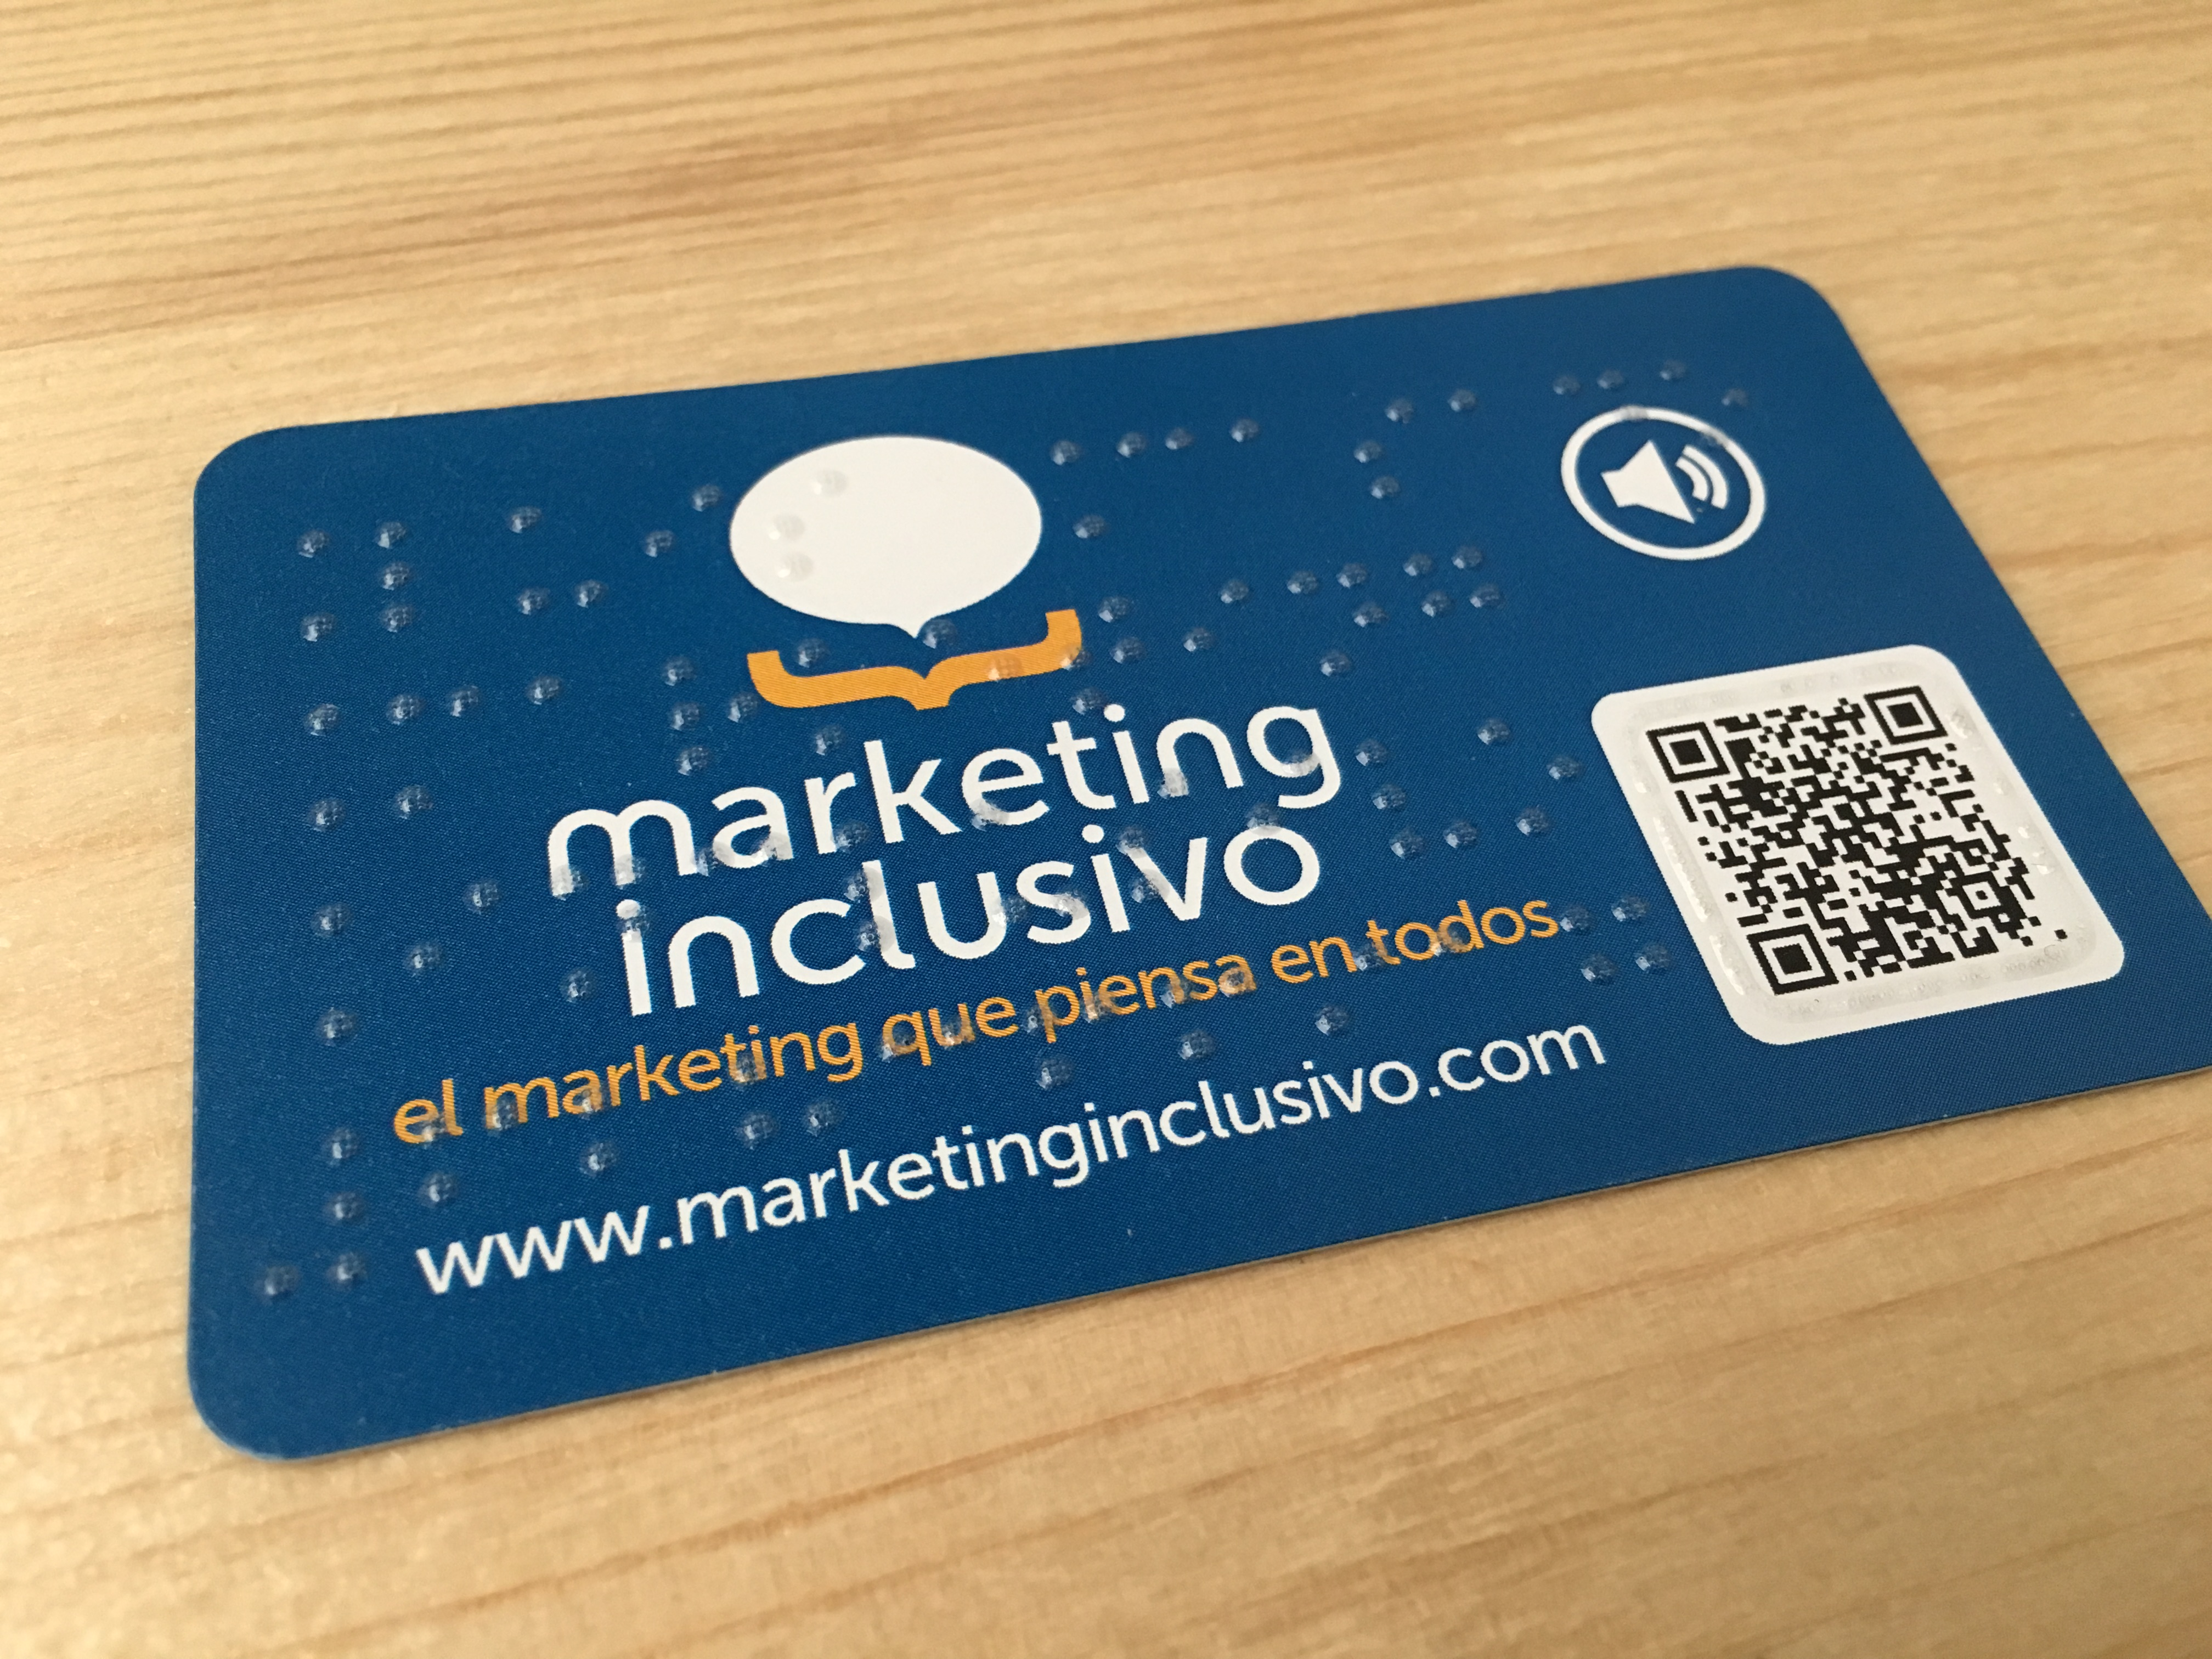 Tarjeta de visita azul de Marketing Inclusivo se aprecian unas letras en braille en toda su superficie y un código QR enmarcado con relieve braille.